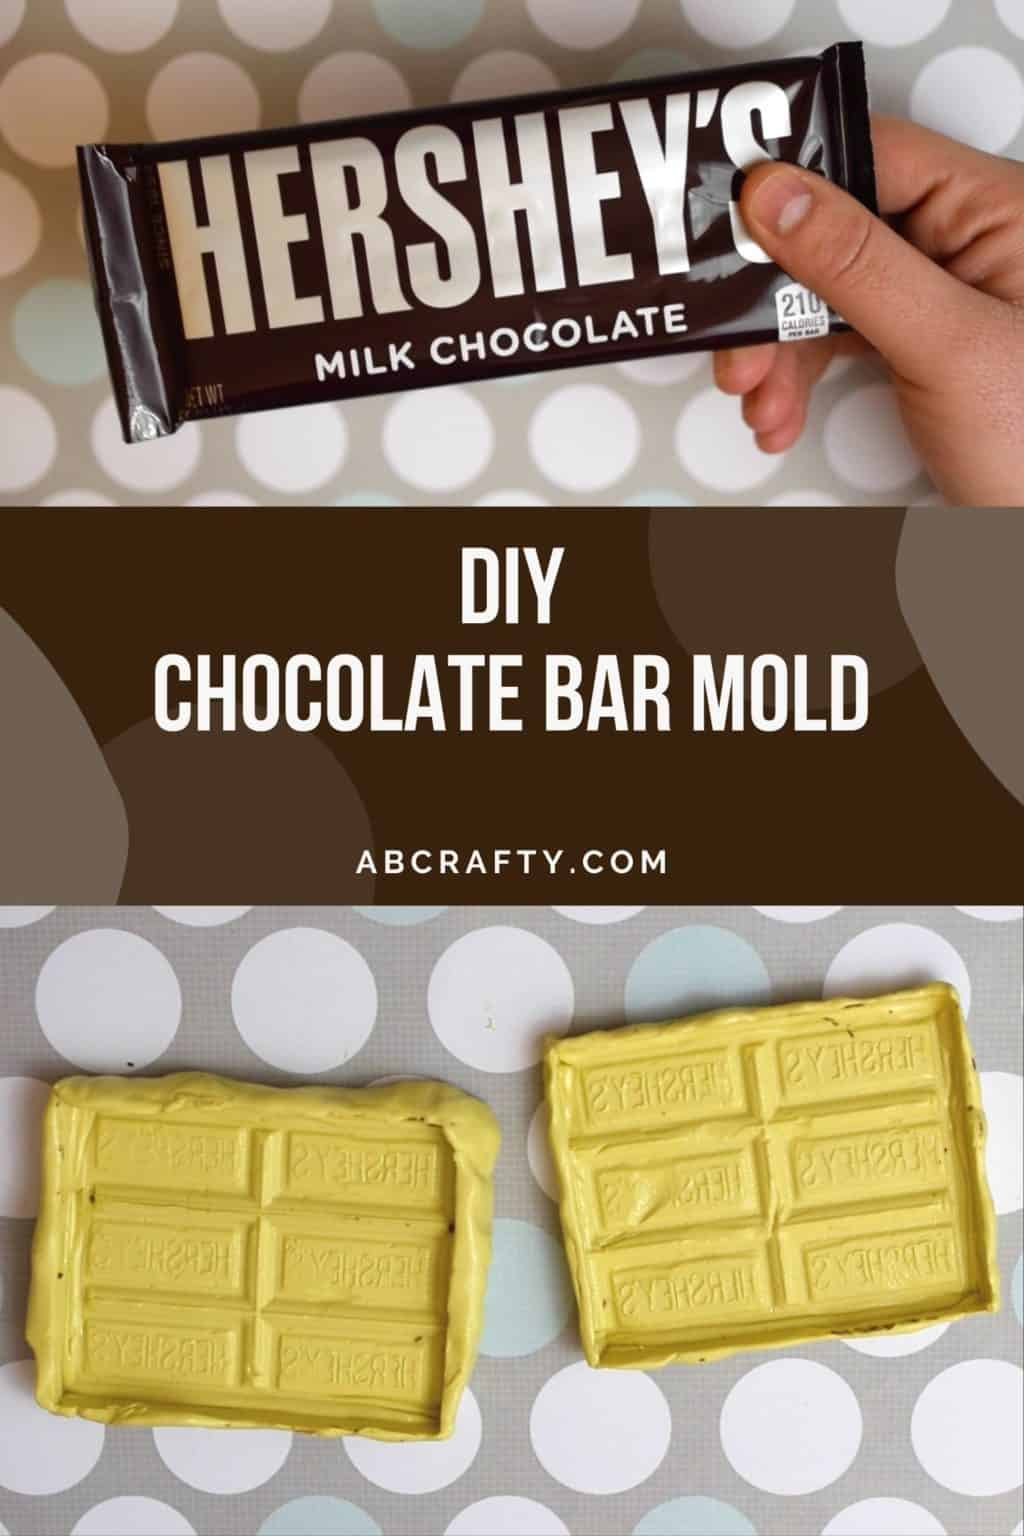 the image on top is a hand holding a hershey's milk chocolate bar and the bottom image is two homemade silicone chocolate bar molds with the title 'diy chocolate bar mold, abcrafty.com'